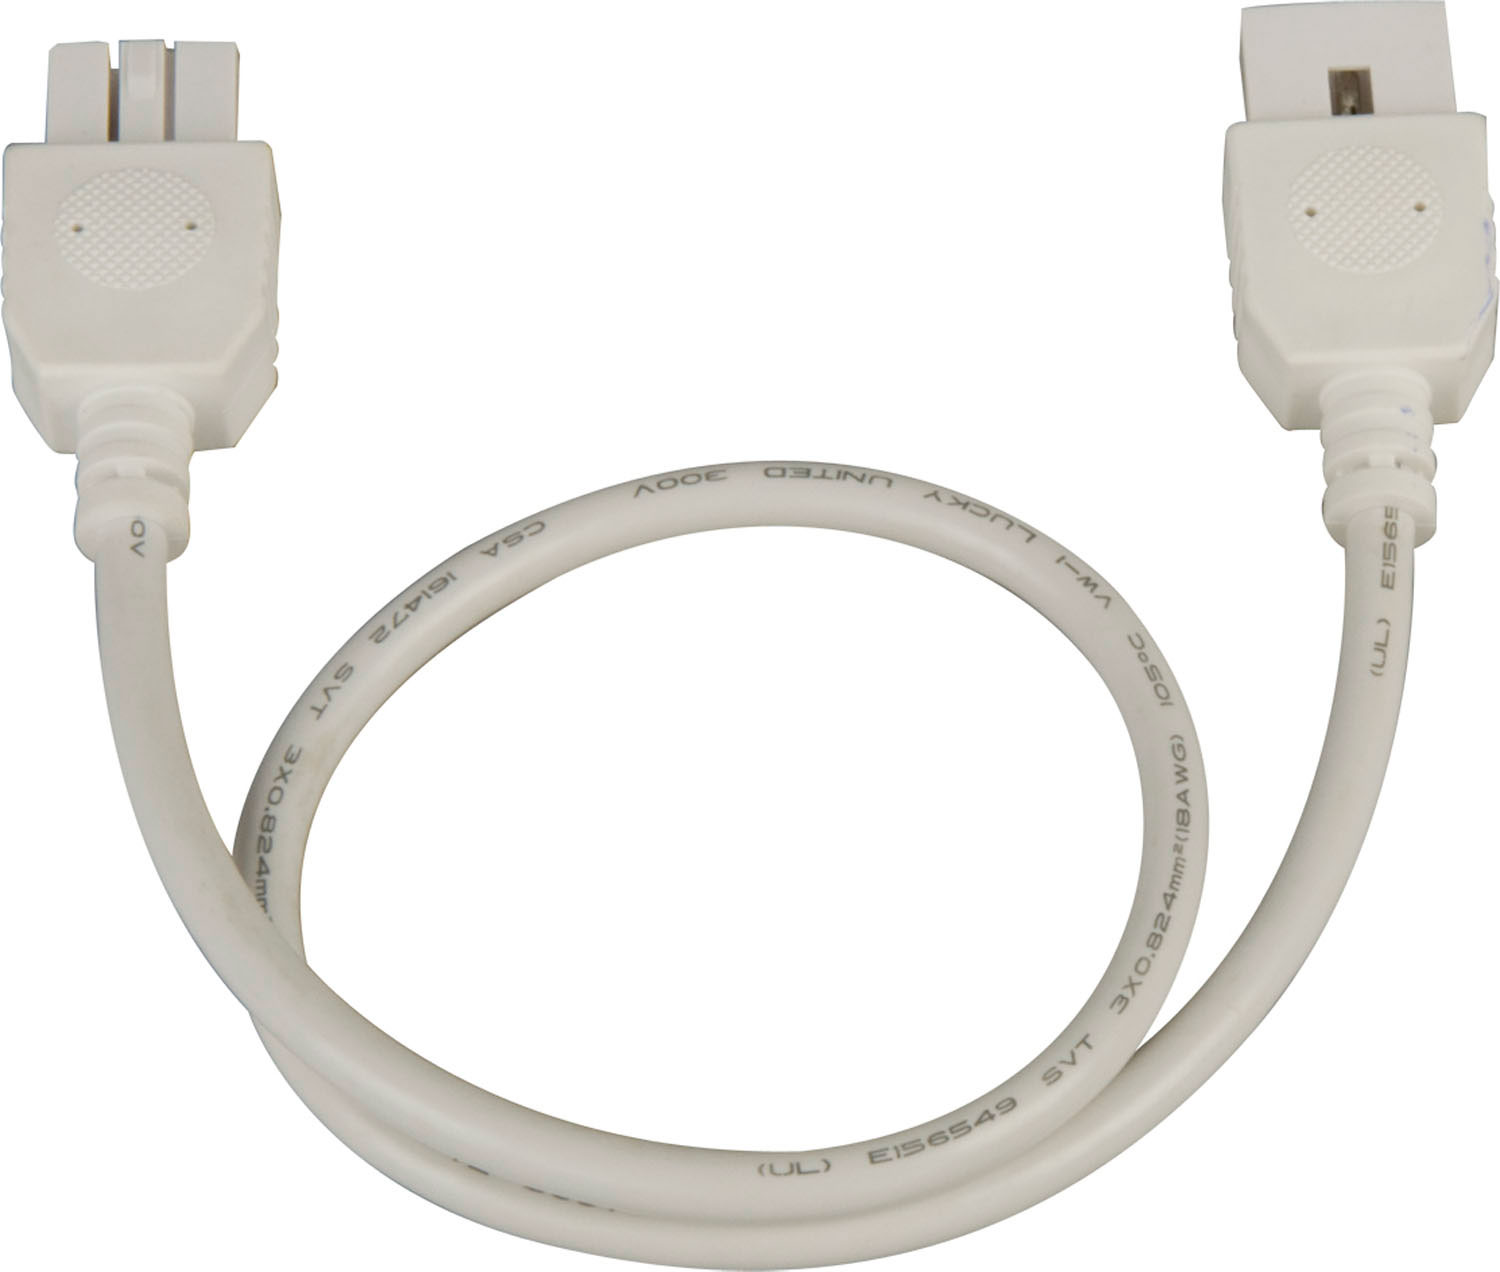 18 inch Connector Cord from the CounterMax MXInterLink4 collection by Maxim 87877WT